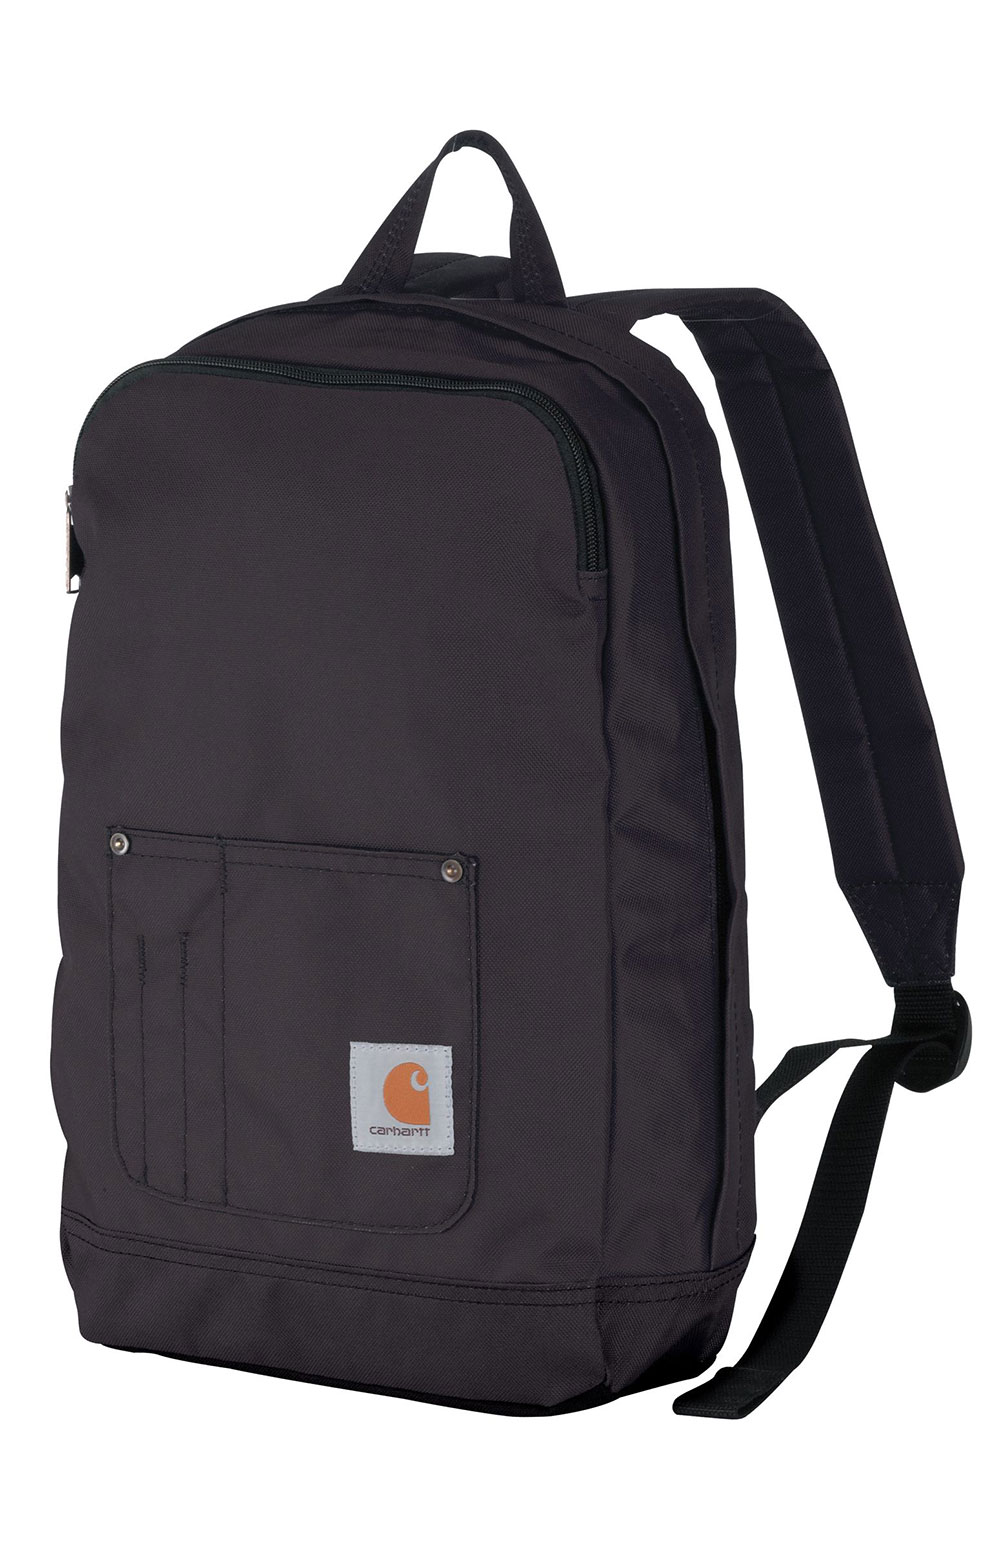 Legacy Compact Backpack - Black